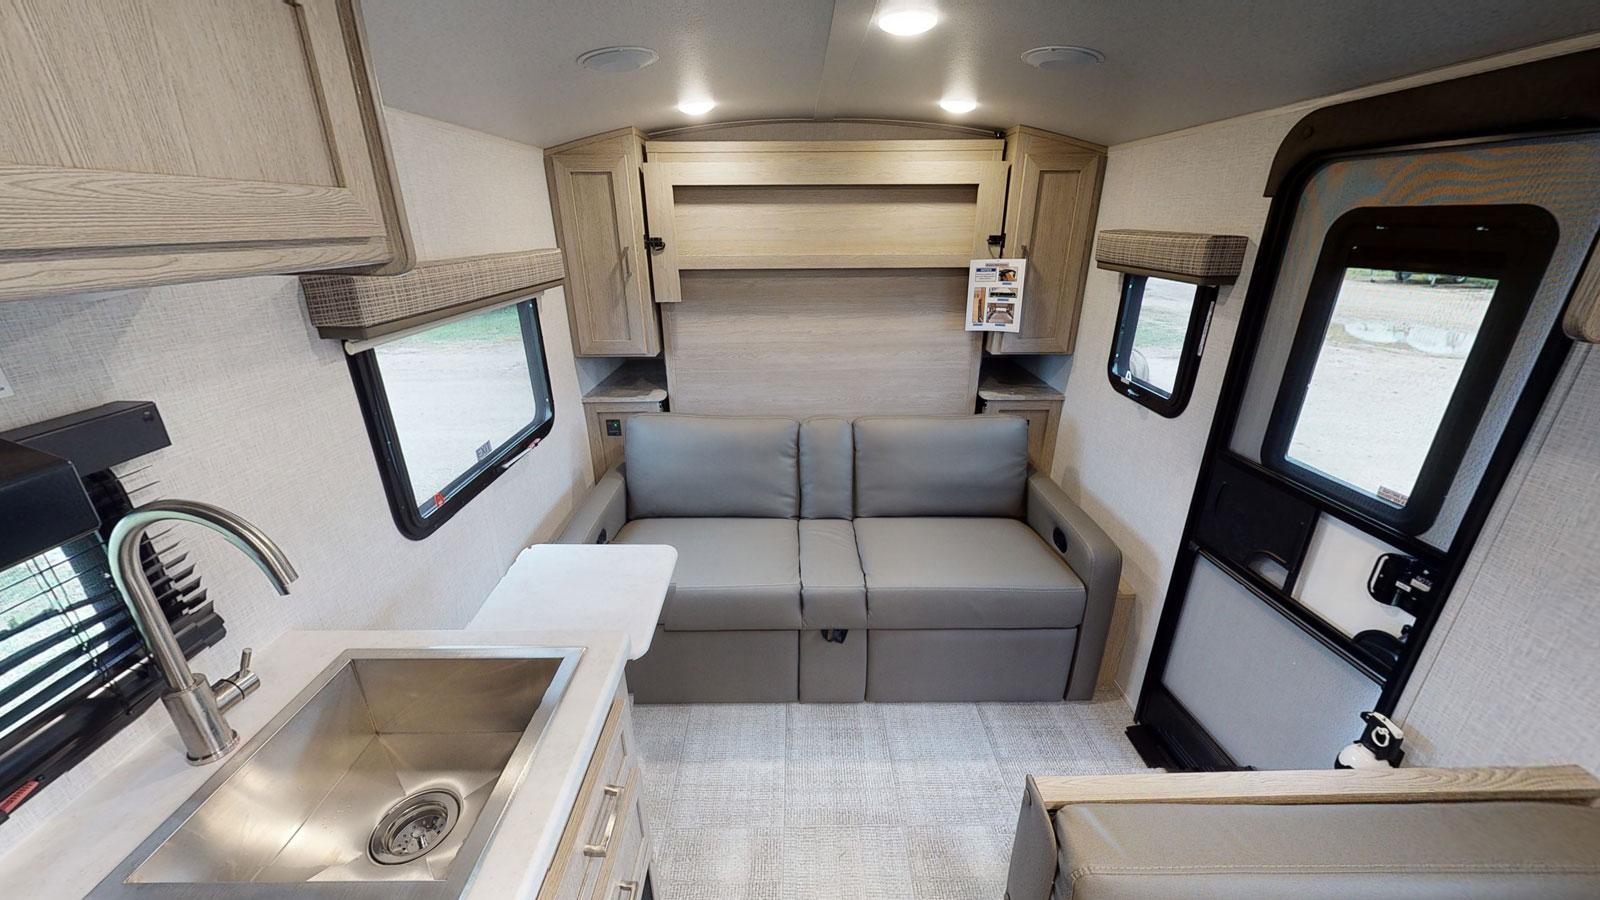 2021 FOREST RIVER E-PRO 19FD FOR SALE LIGHTWEIGHT TRAVEL TRAILER FOR SALE HALIFAX NS